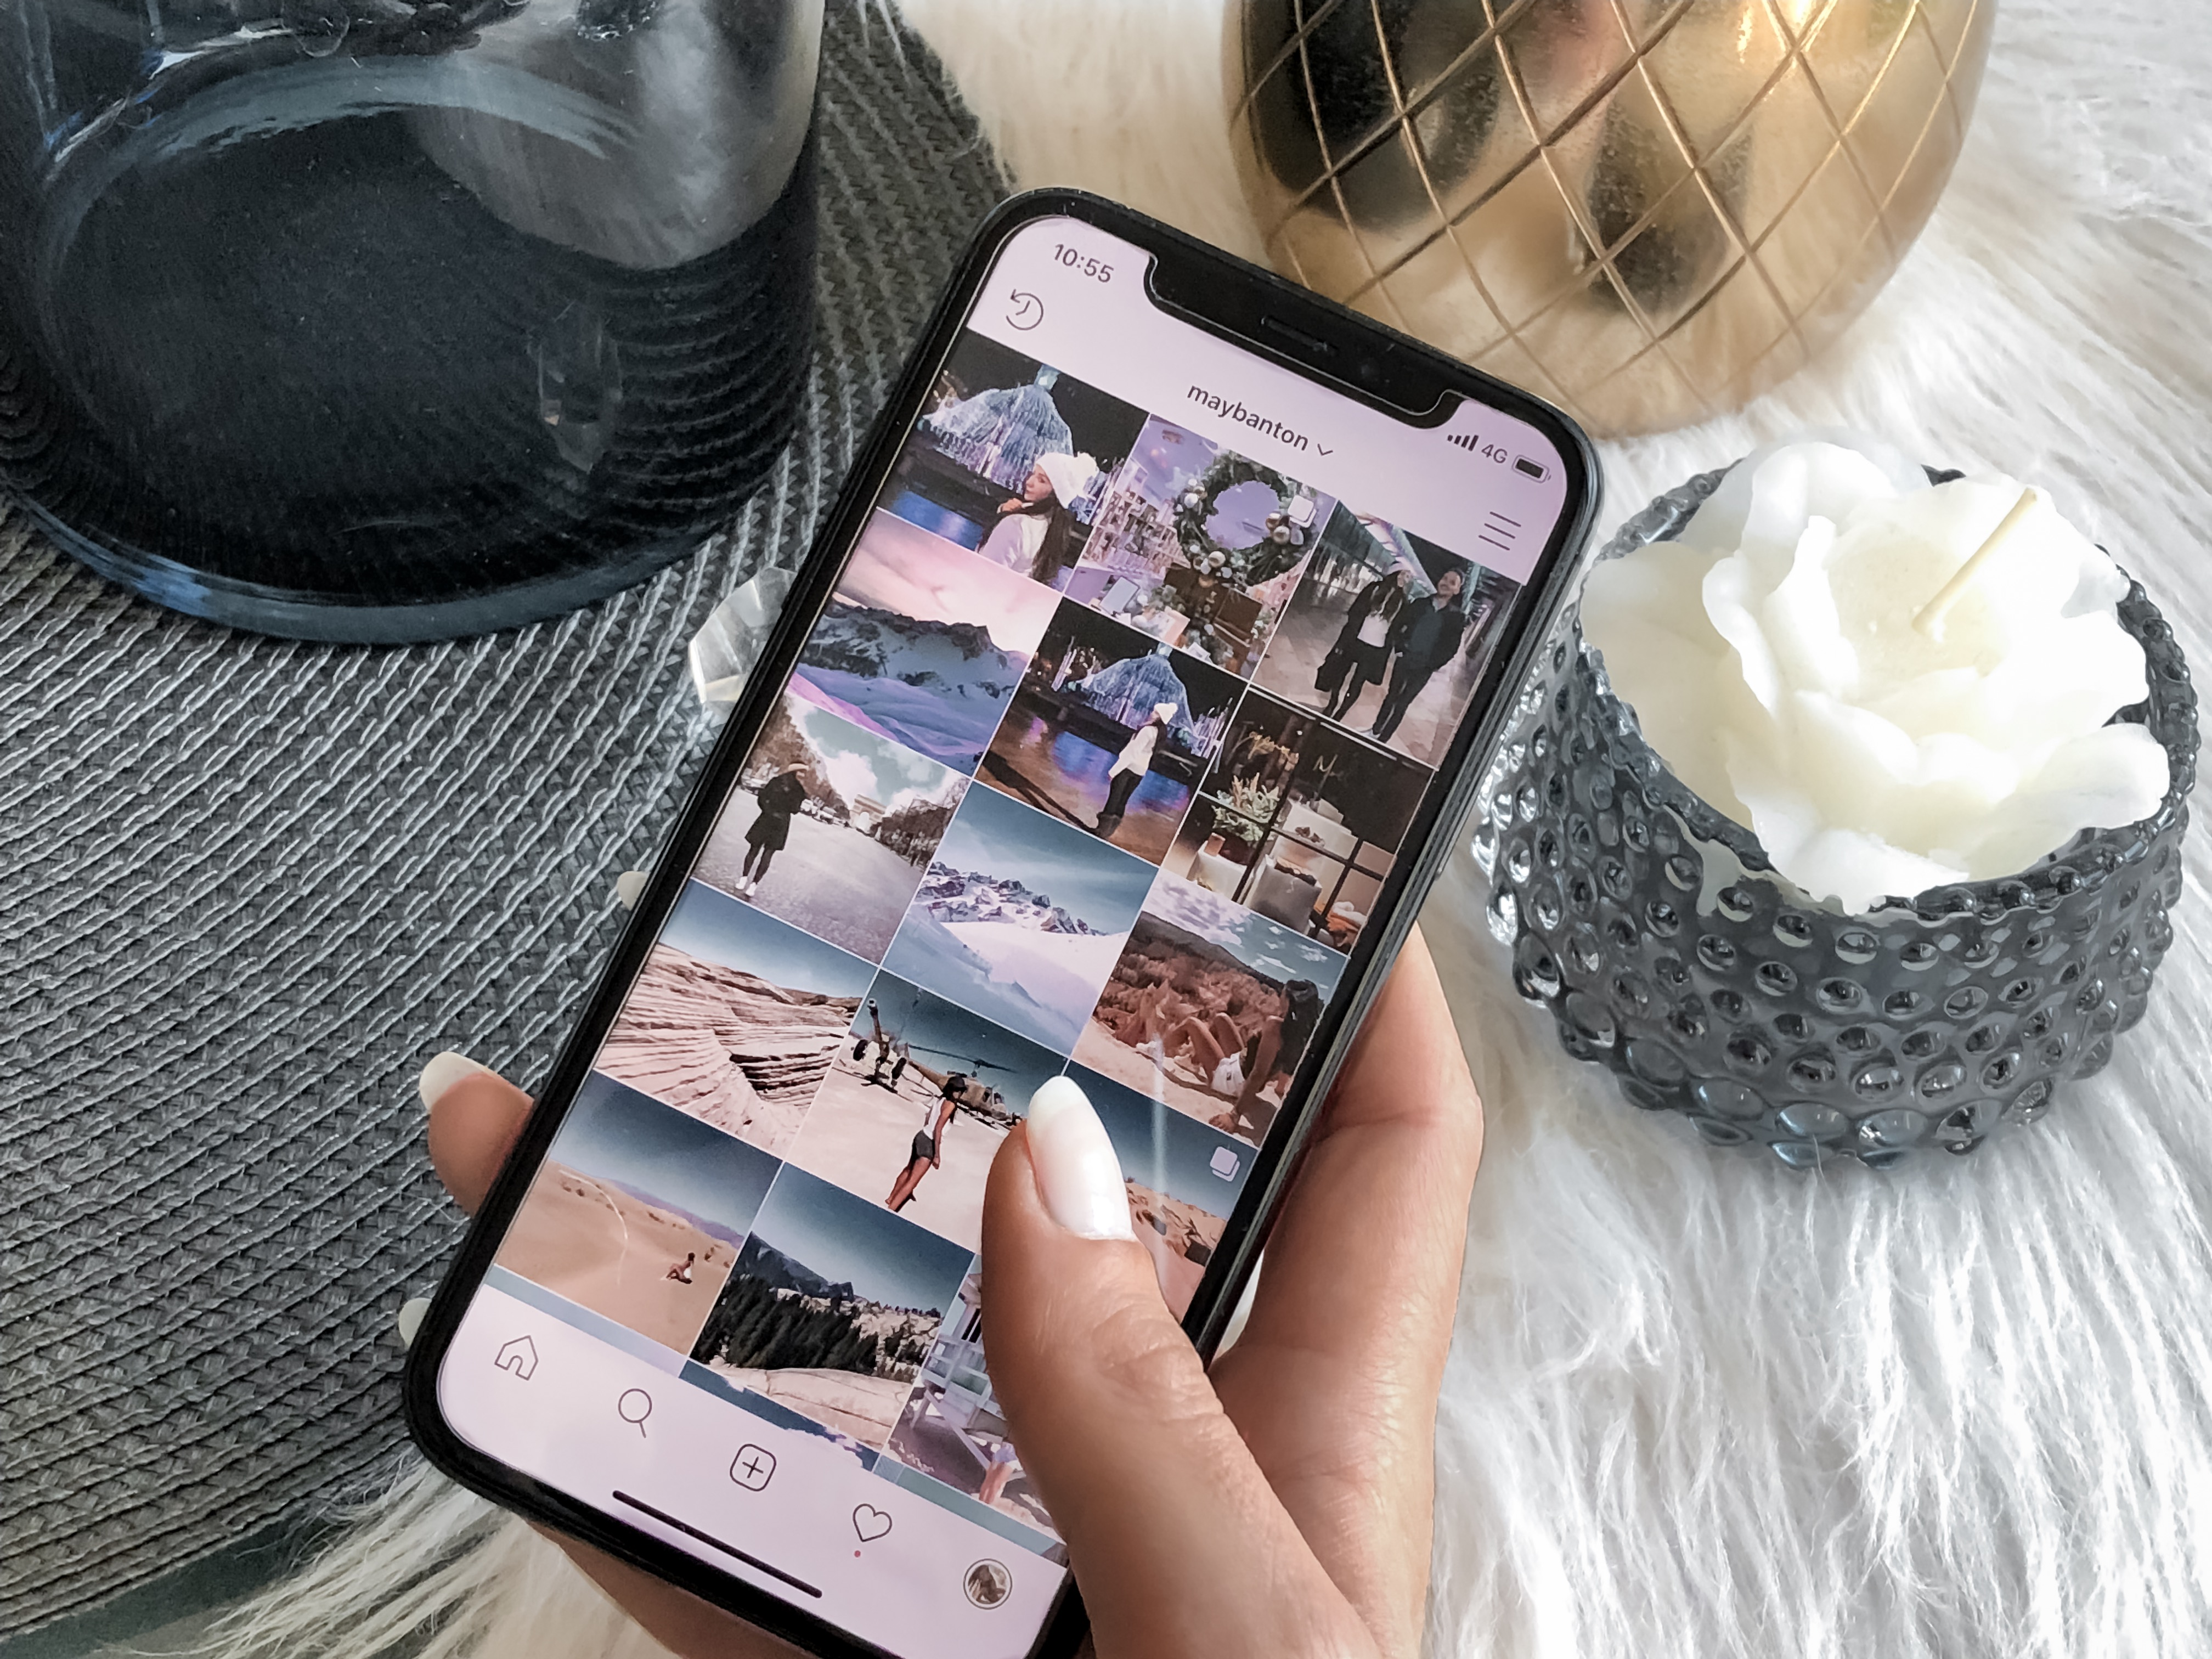 Instagram: comment améliorer ton feed ?